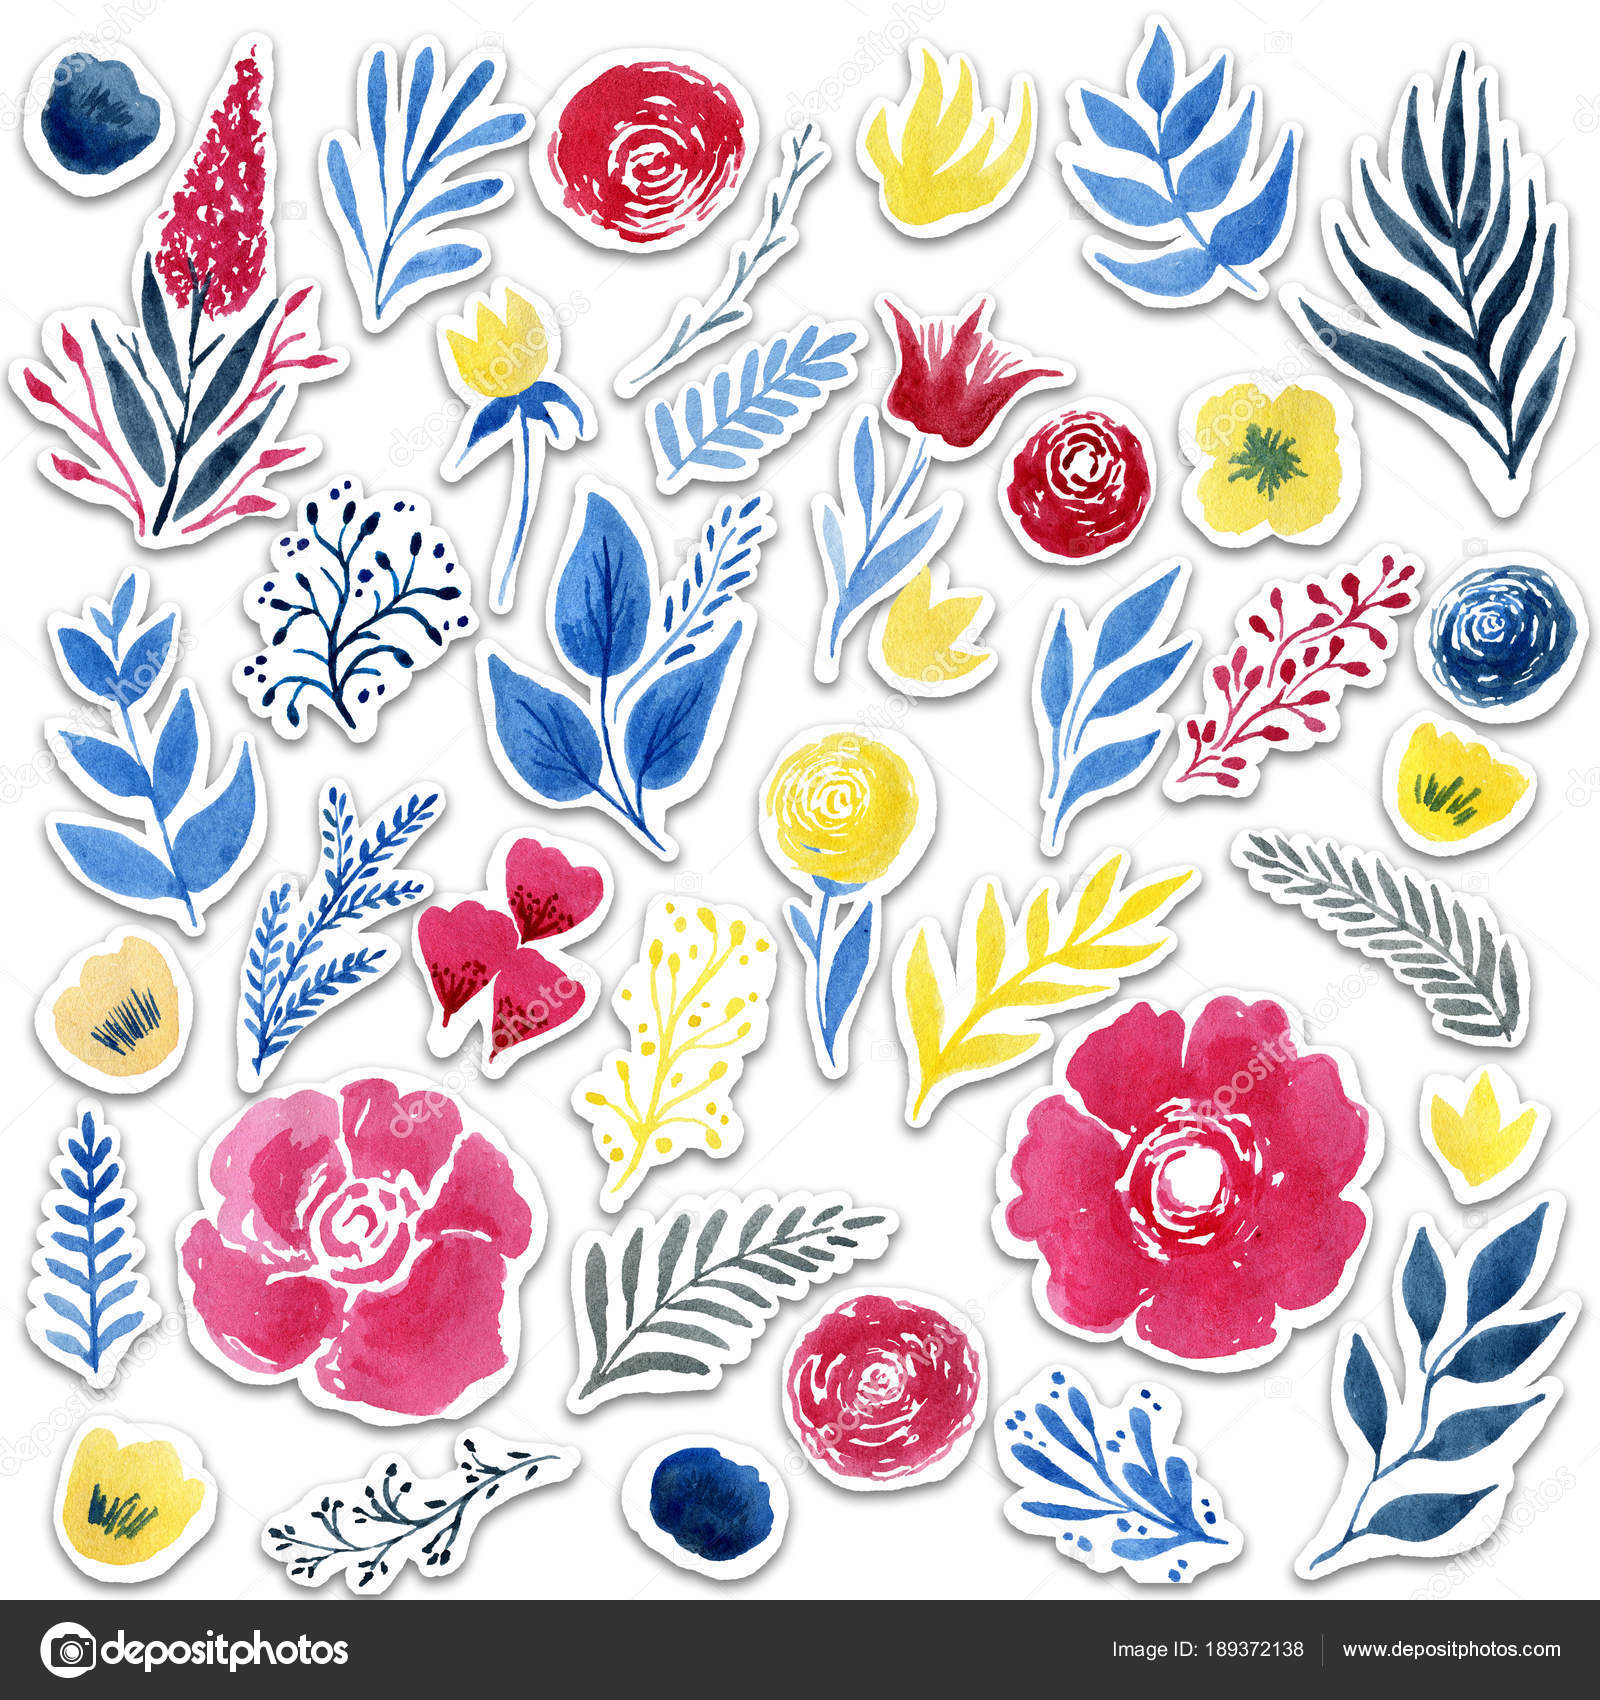 beautiful watercolor flower stickers set over white background for